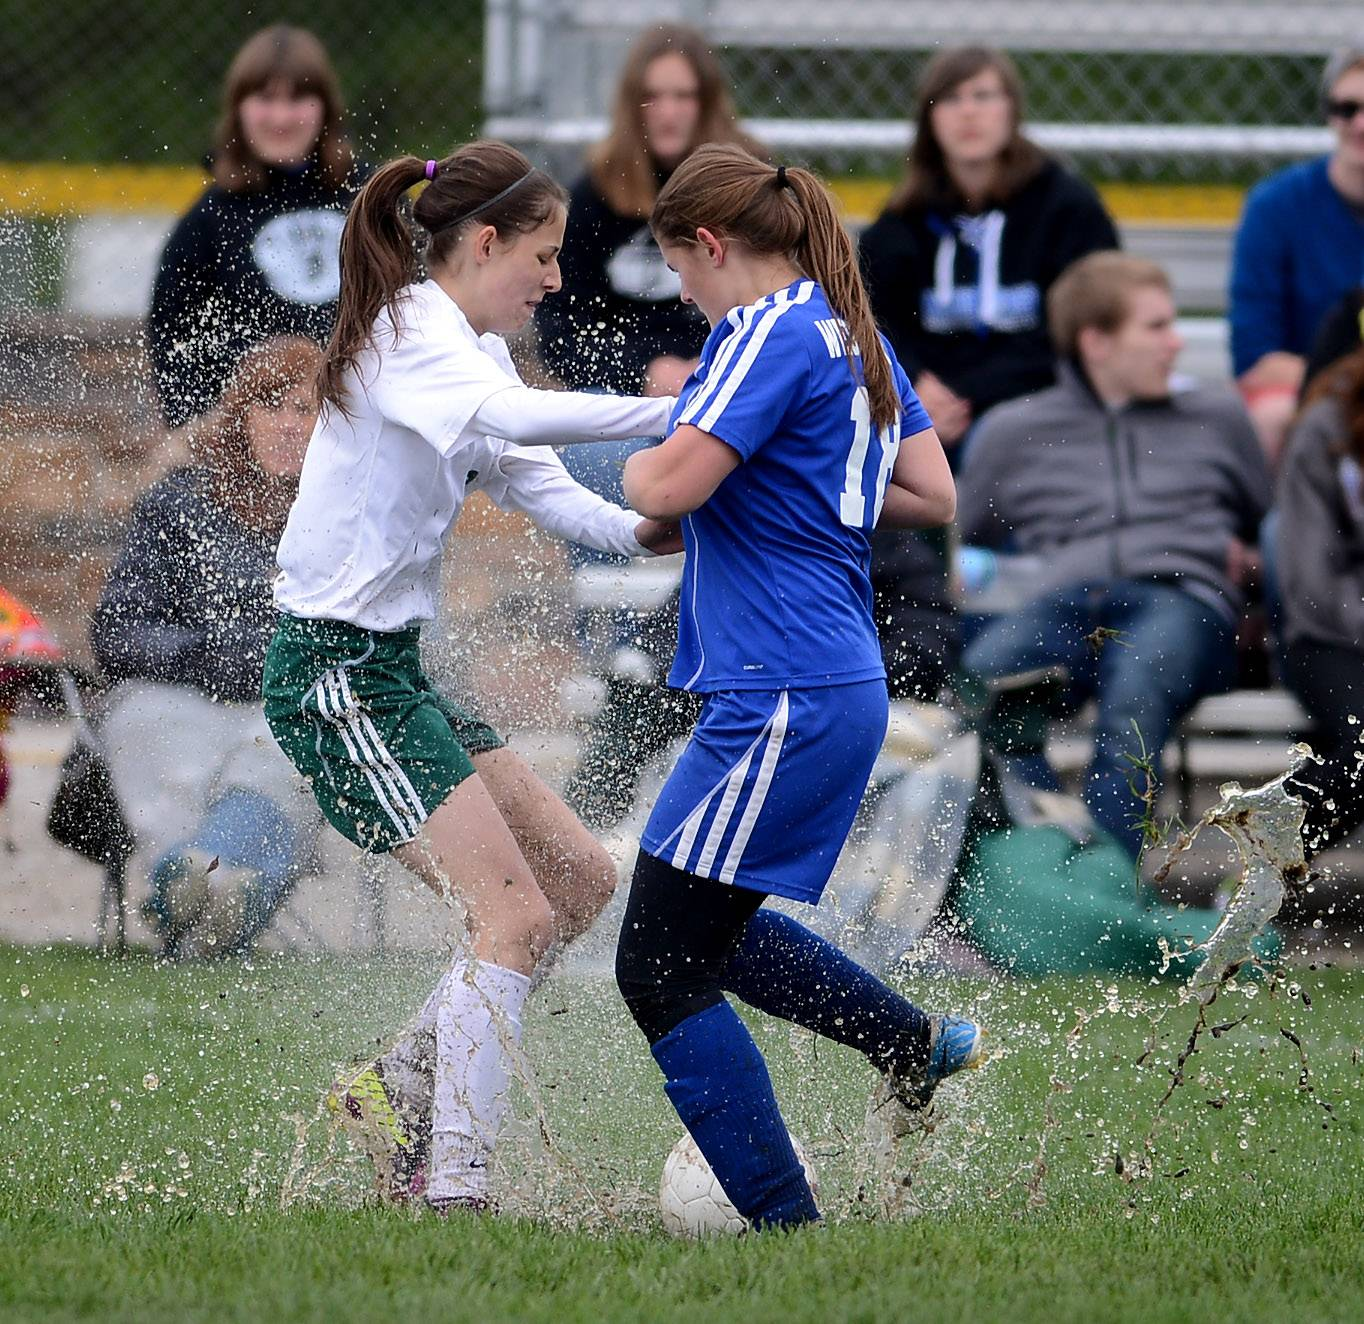 St. Edward's Chelsea Gnan (6) and Westminster Christian's Allie Tanzillo find the field's biggest puddle as they battle for the ball during Friday's regional final in Elgin.